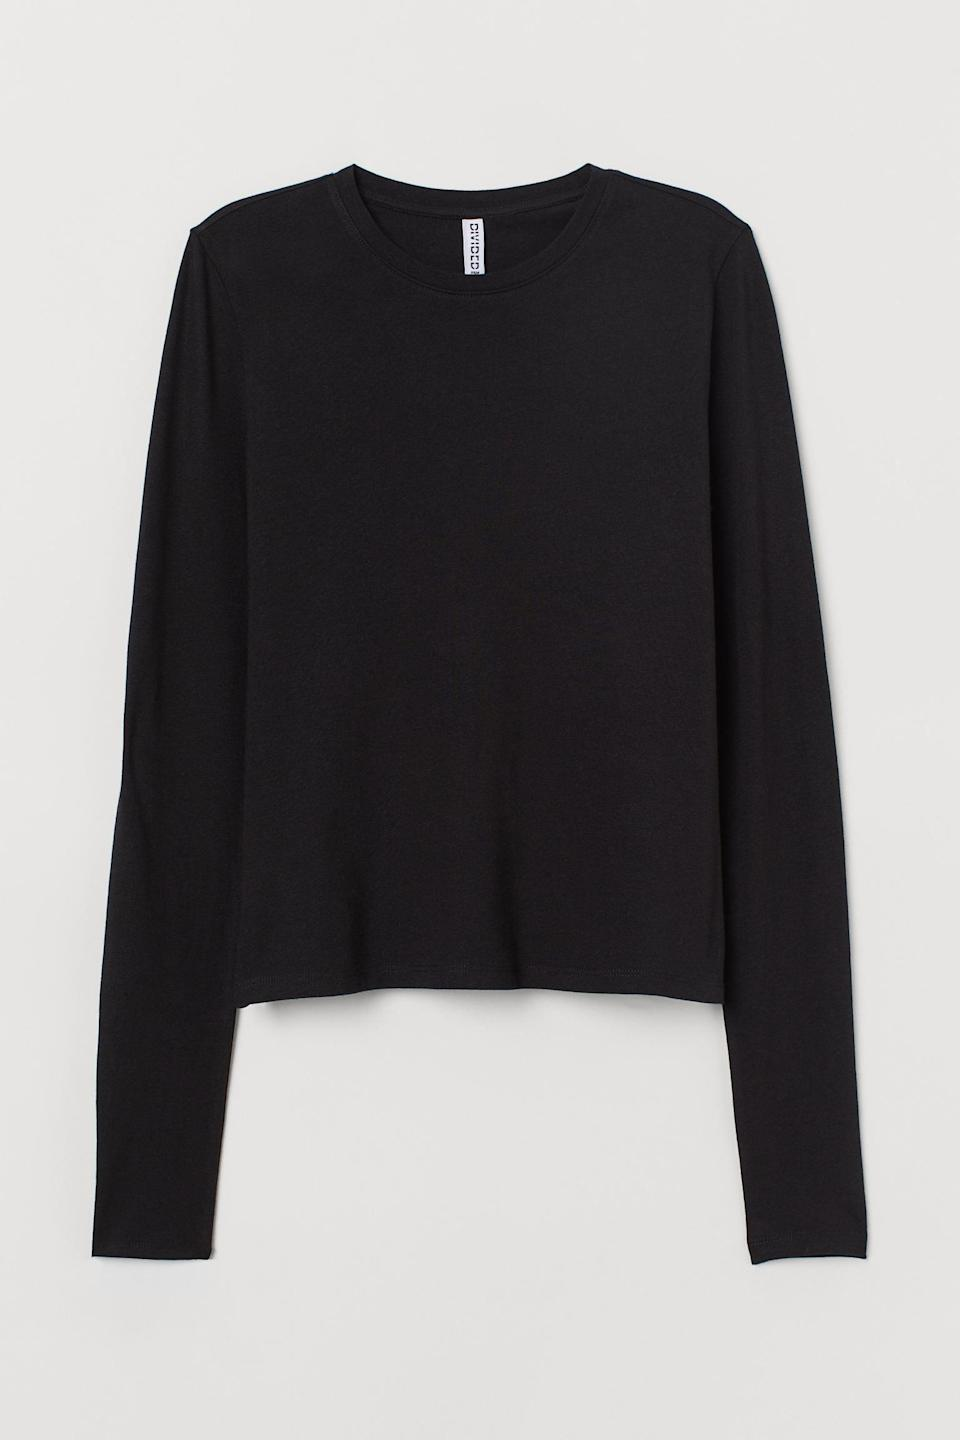 <p>Everyone needs a basic like this <span>Long-Sleeved Top</span> ($10).</p>